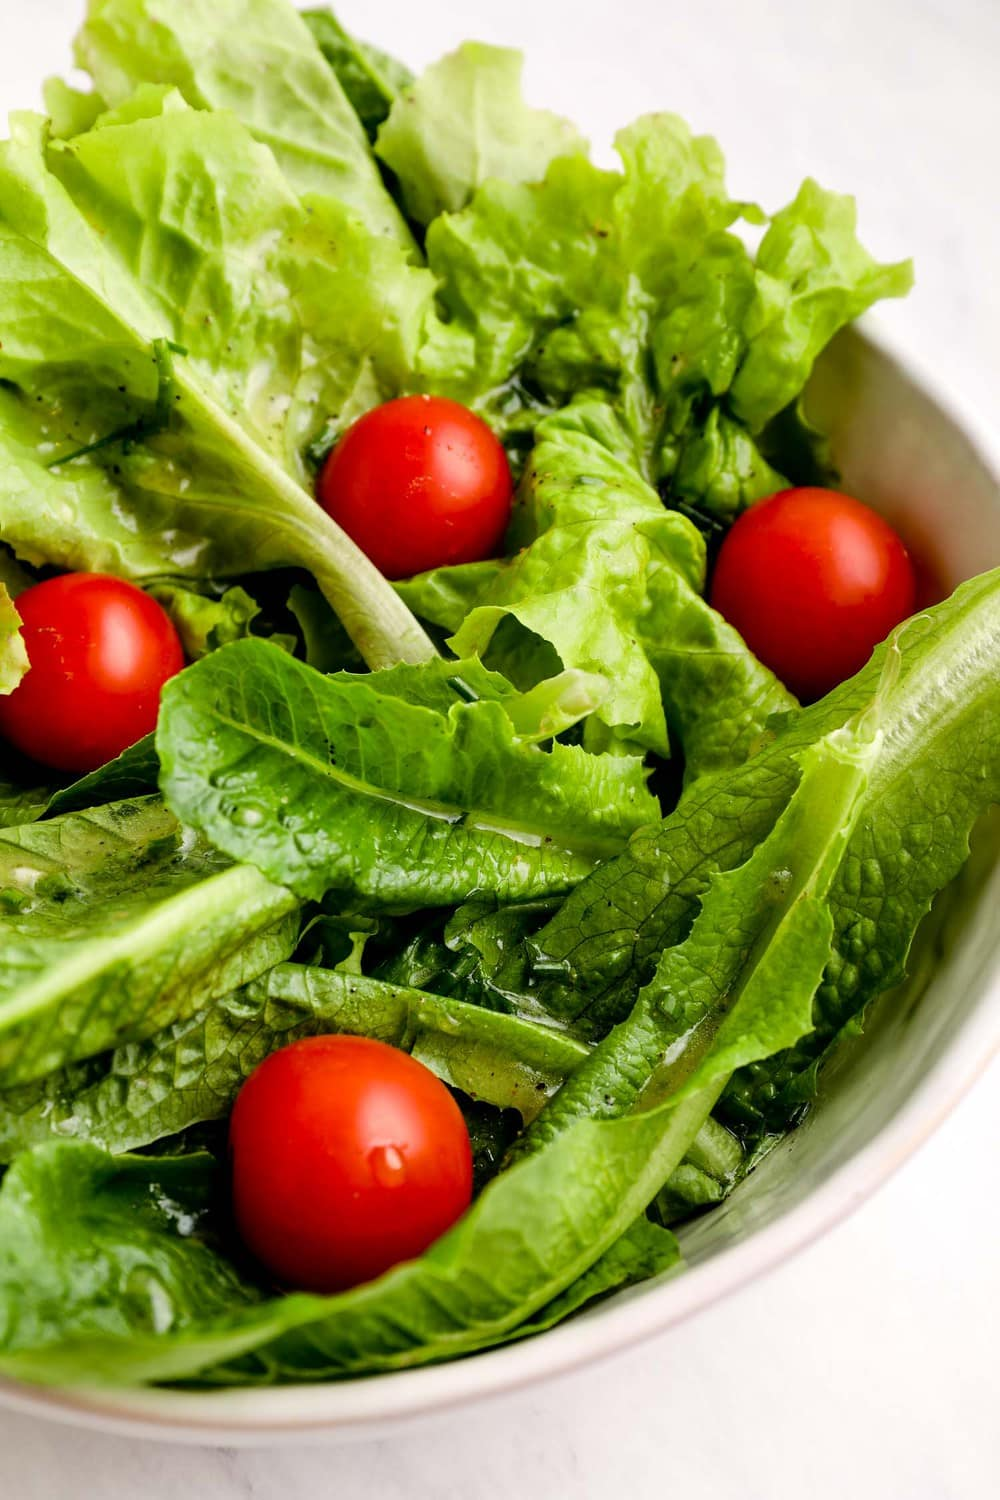 Avocado Oil Salad Dressing on a salad of greens and tomatoes.